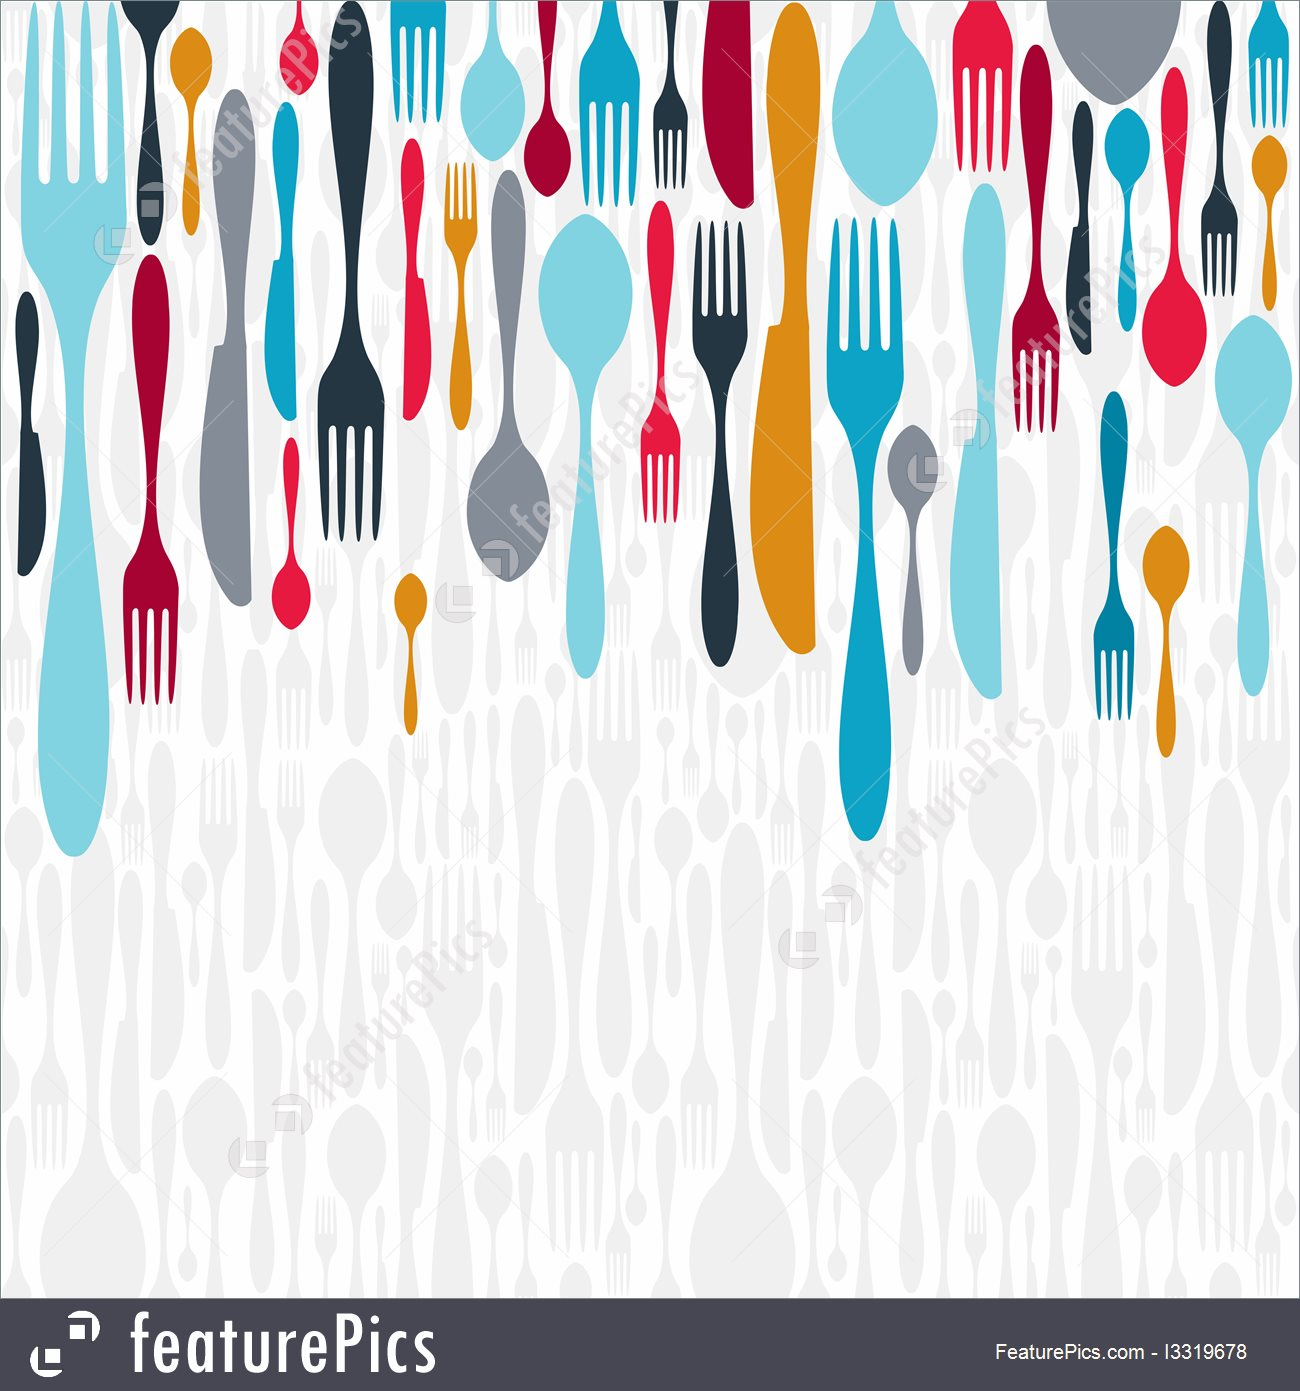 Cutlery Silhouette Icons Background 1300x1391